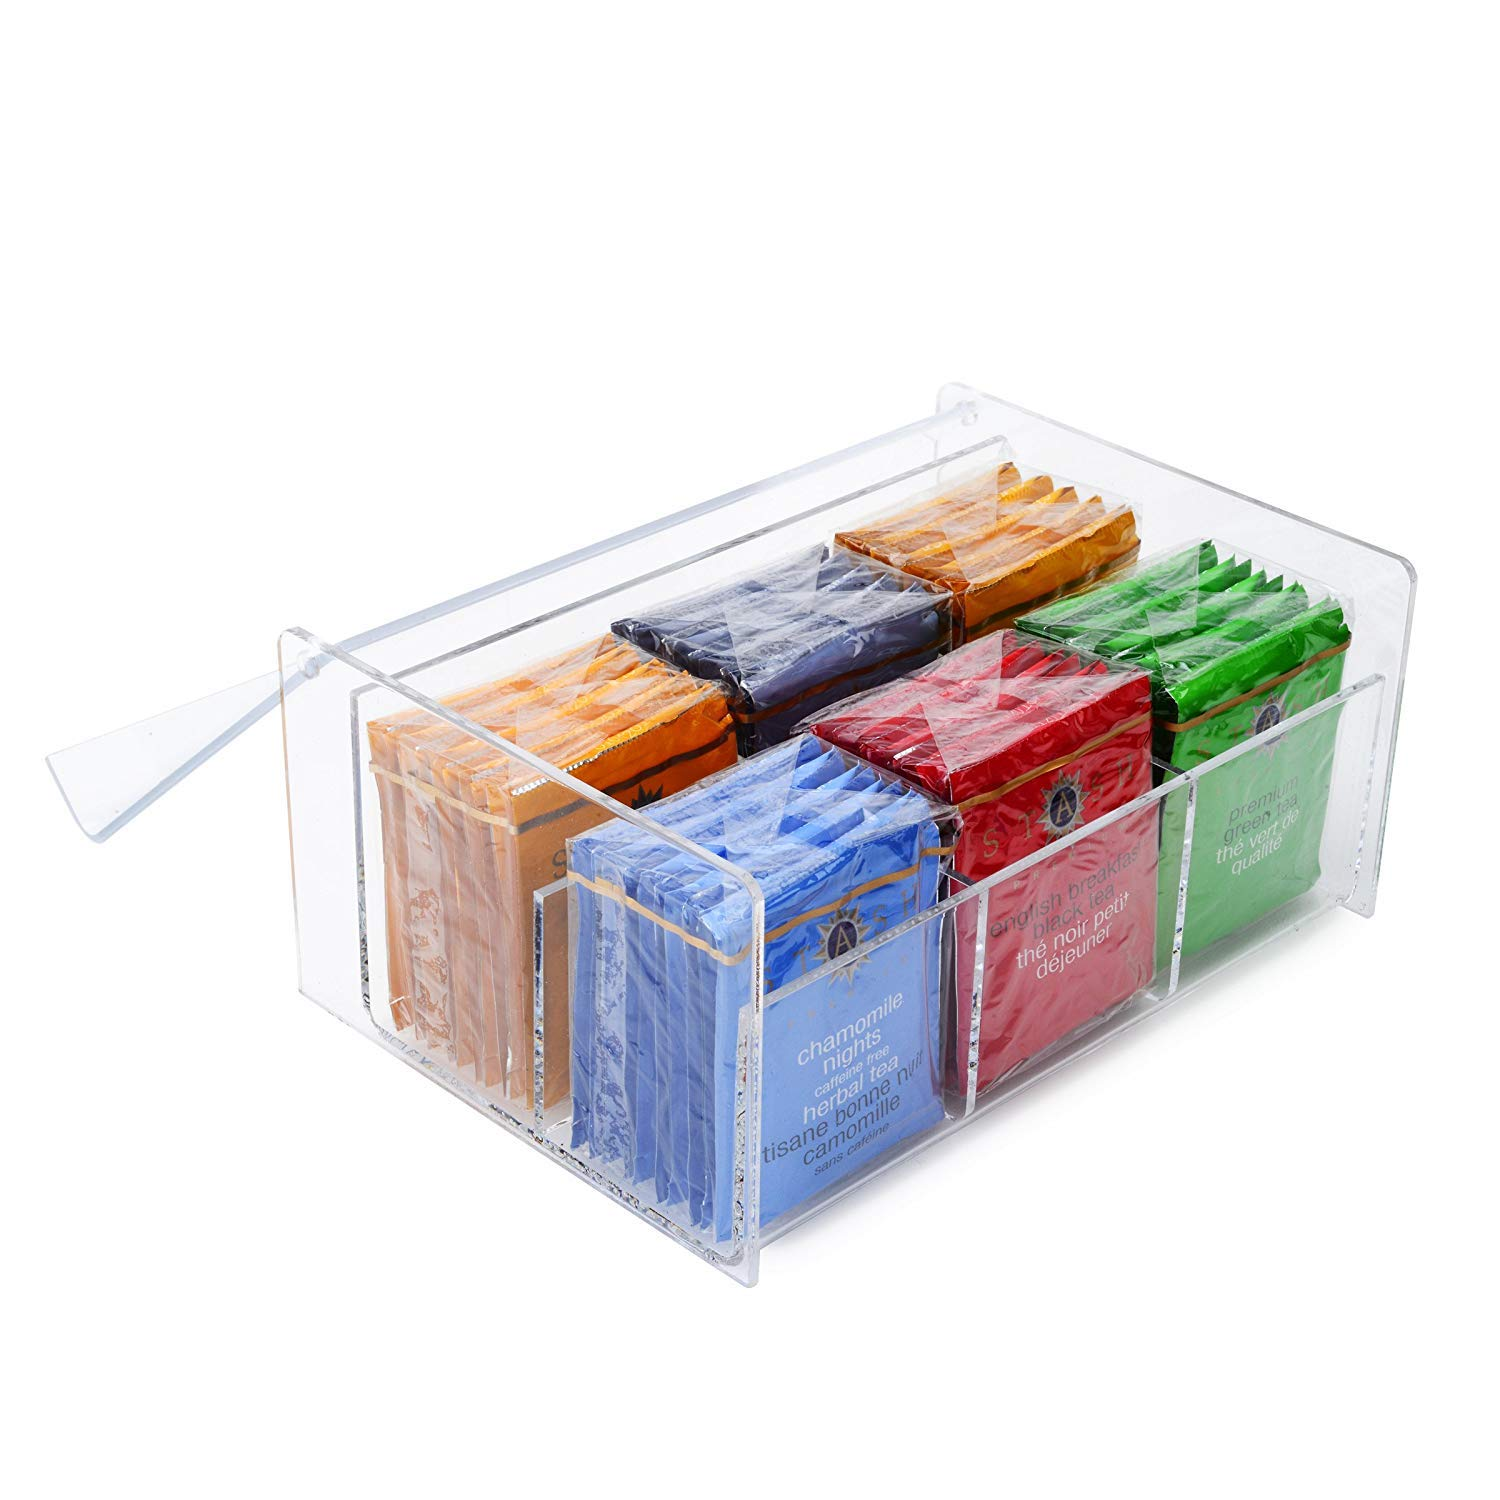 Home-it Acrylic 6 Compact Tea Bag Box orgenizer (Clear) by Home-it